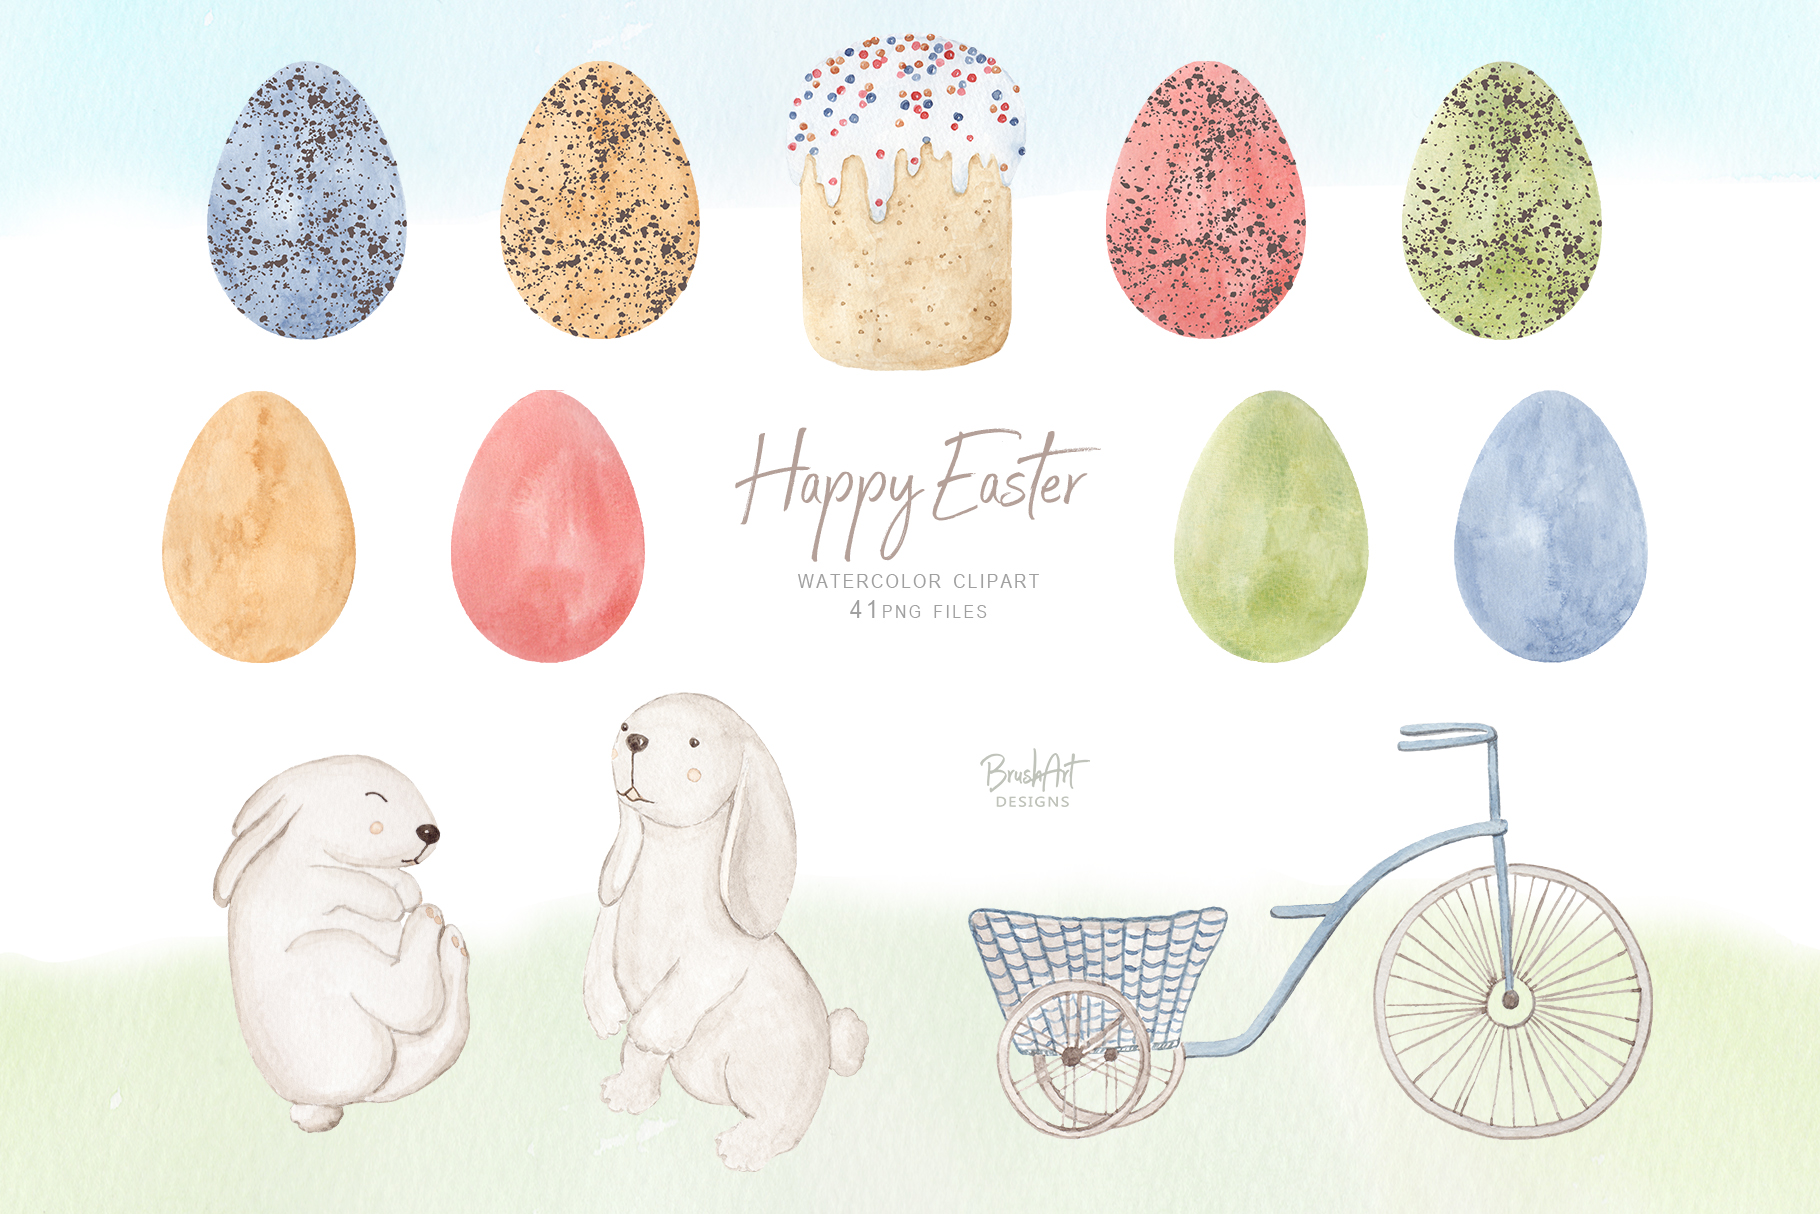 Happy Easter. Watercolor clipart. example image 2